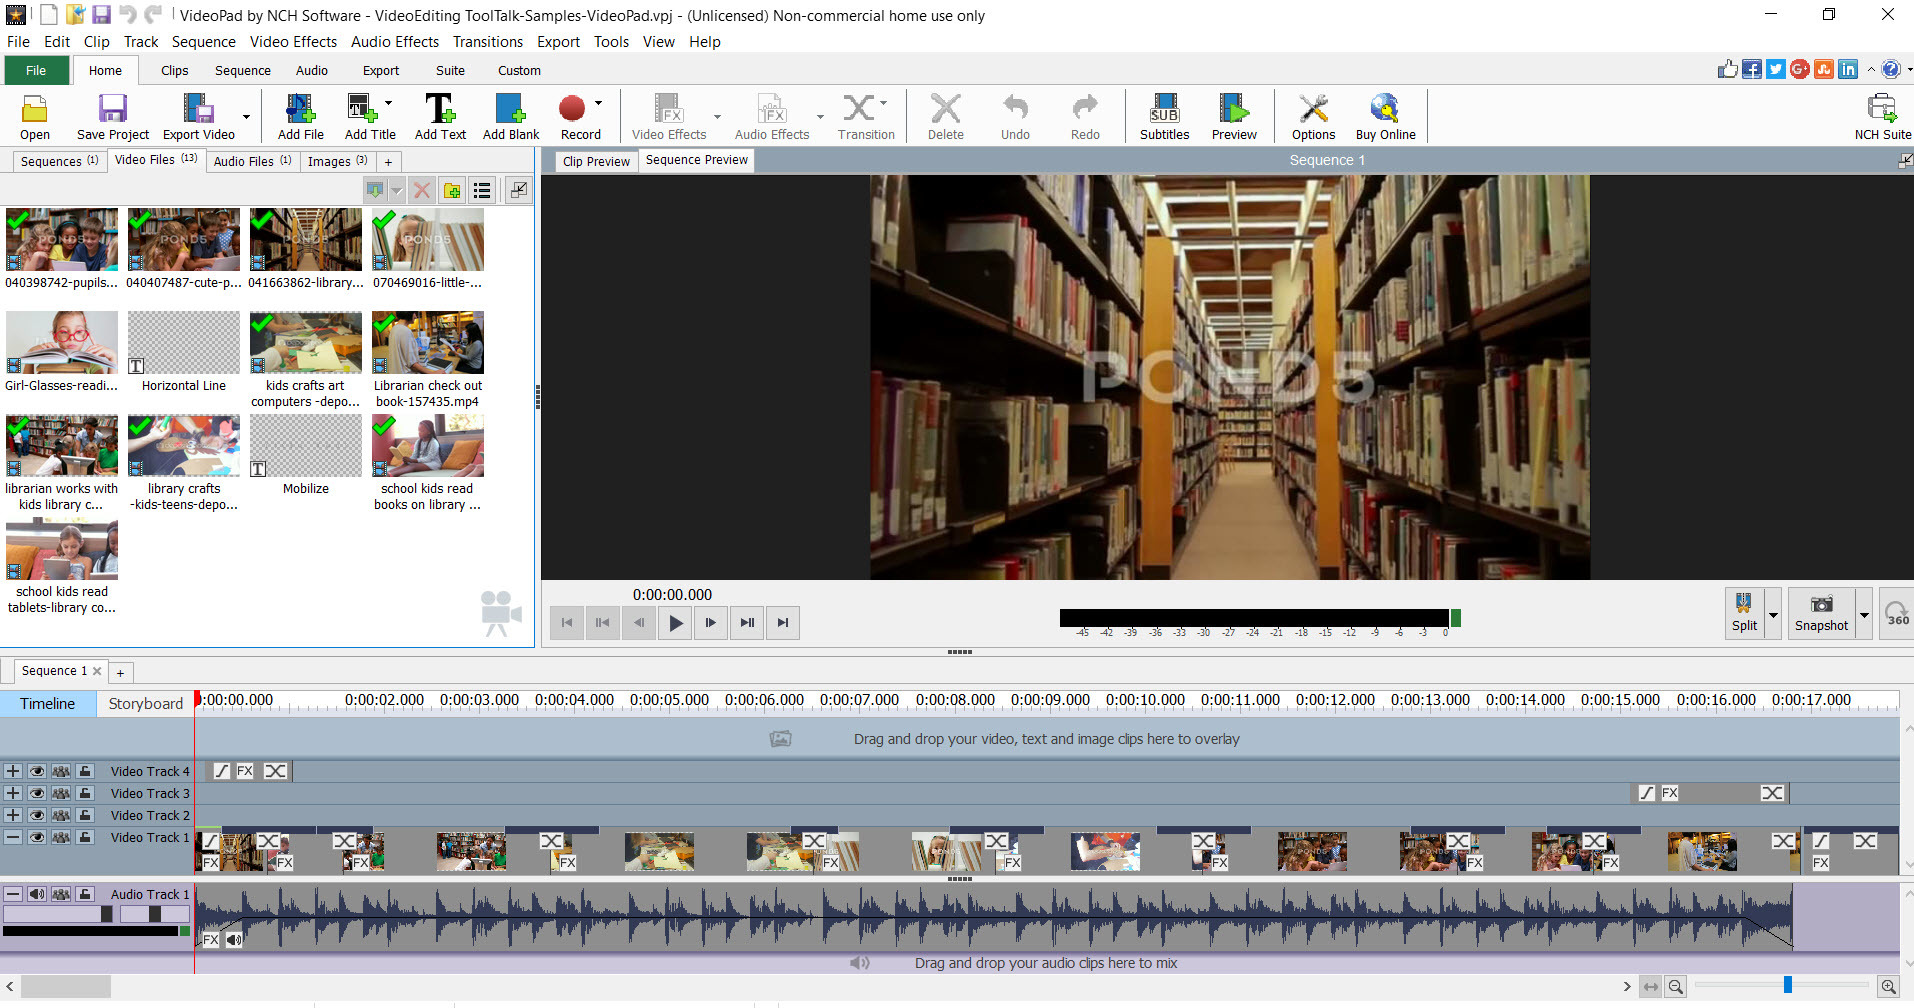 Roundup of Free Video Editor Alternatives to MovieMaker